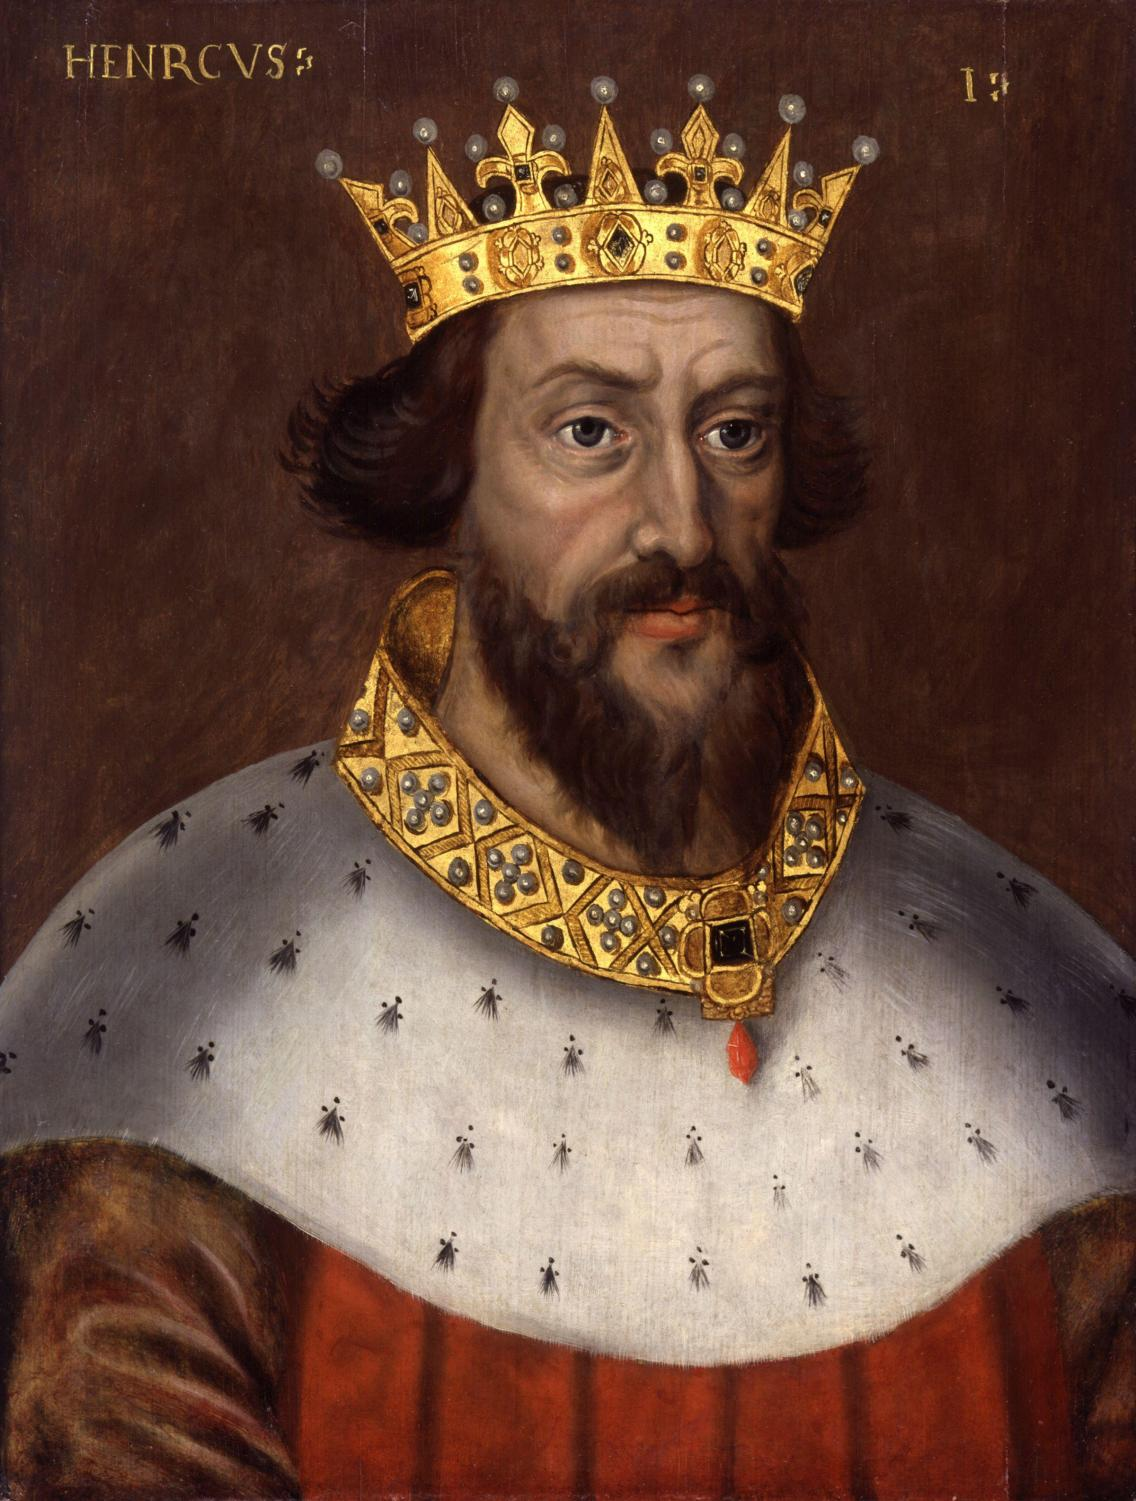 King Henry I representing a patrician status